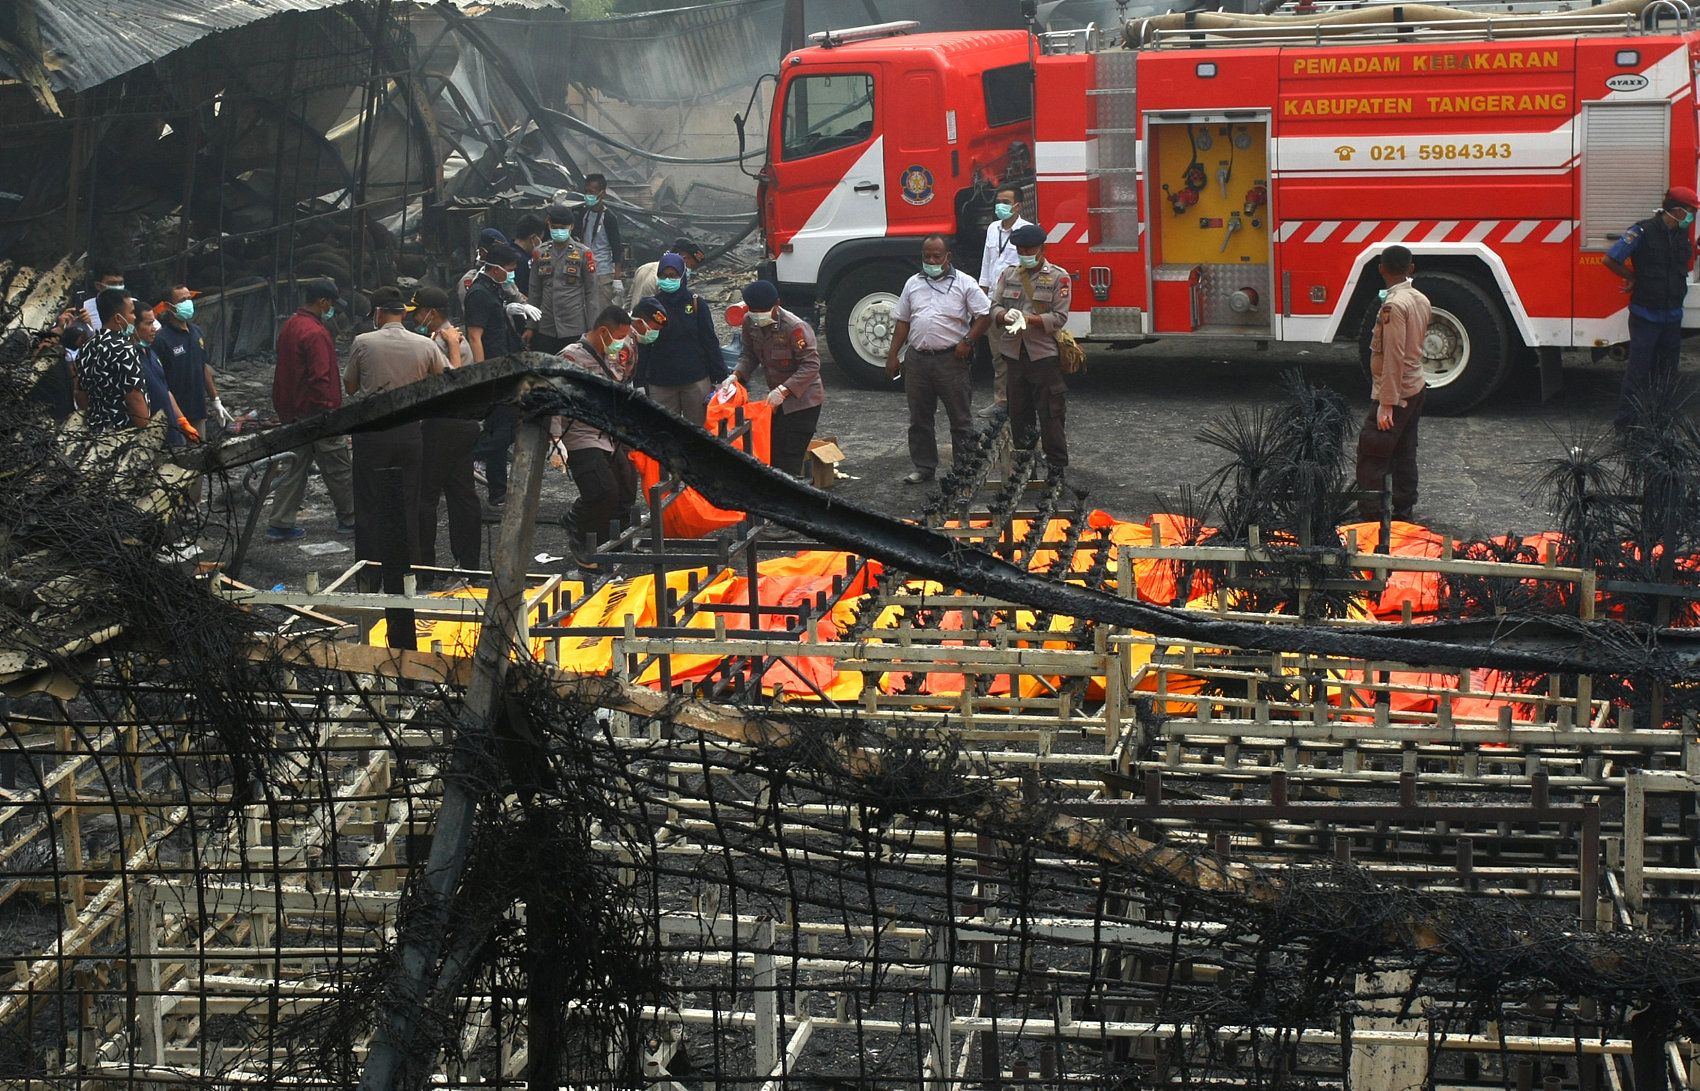 Death toll from fireworks factory fire in Indonesia rises to 47, 46 injured